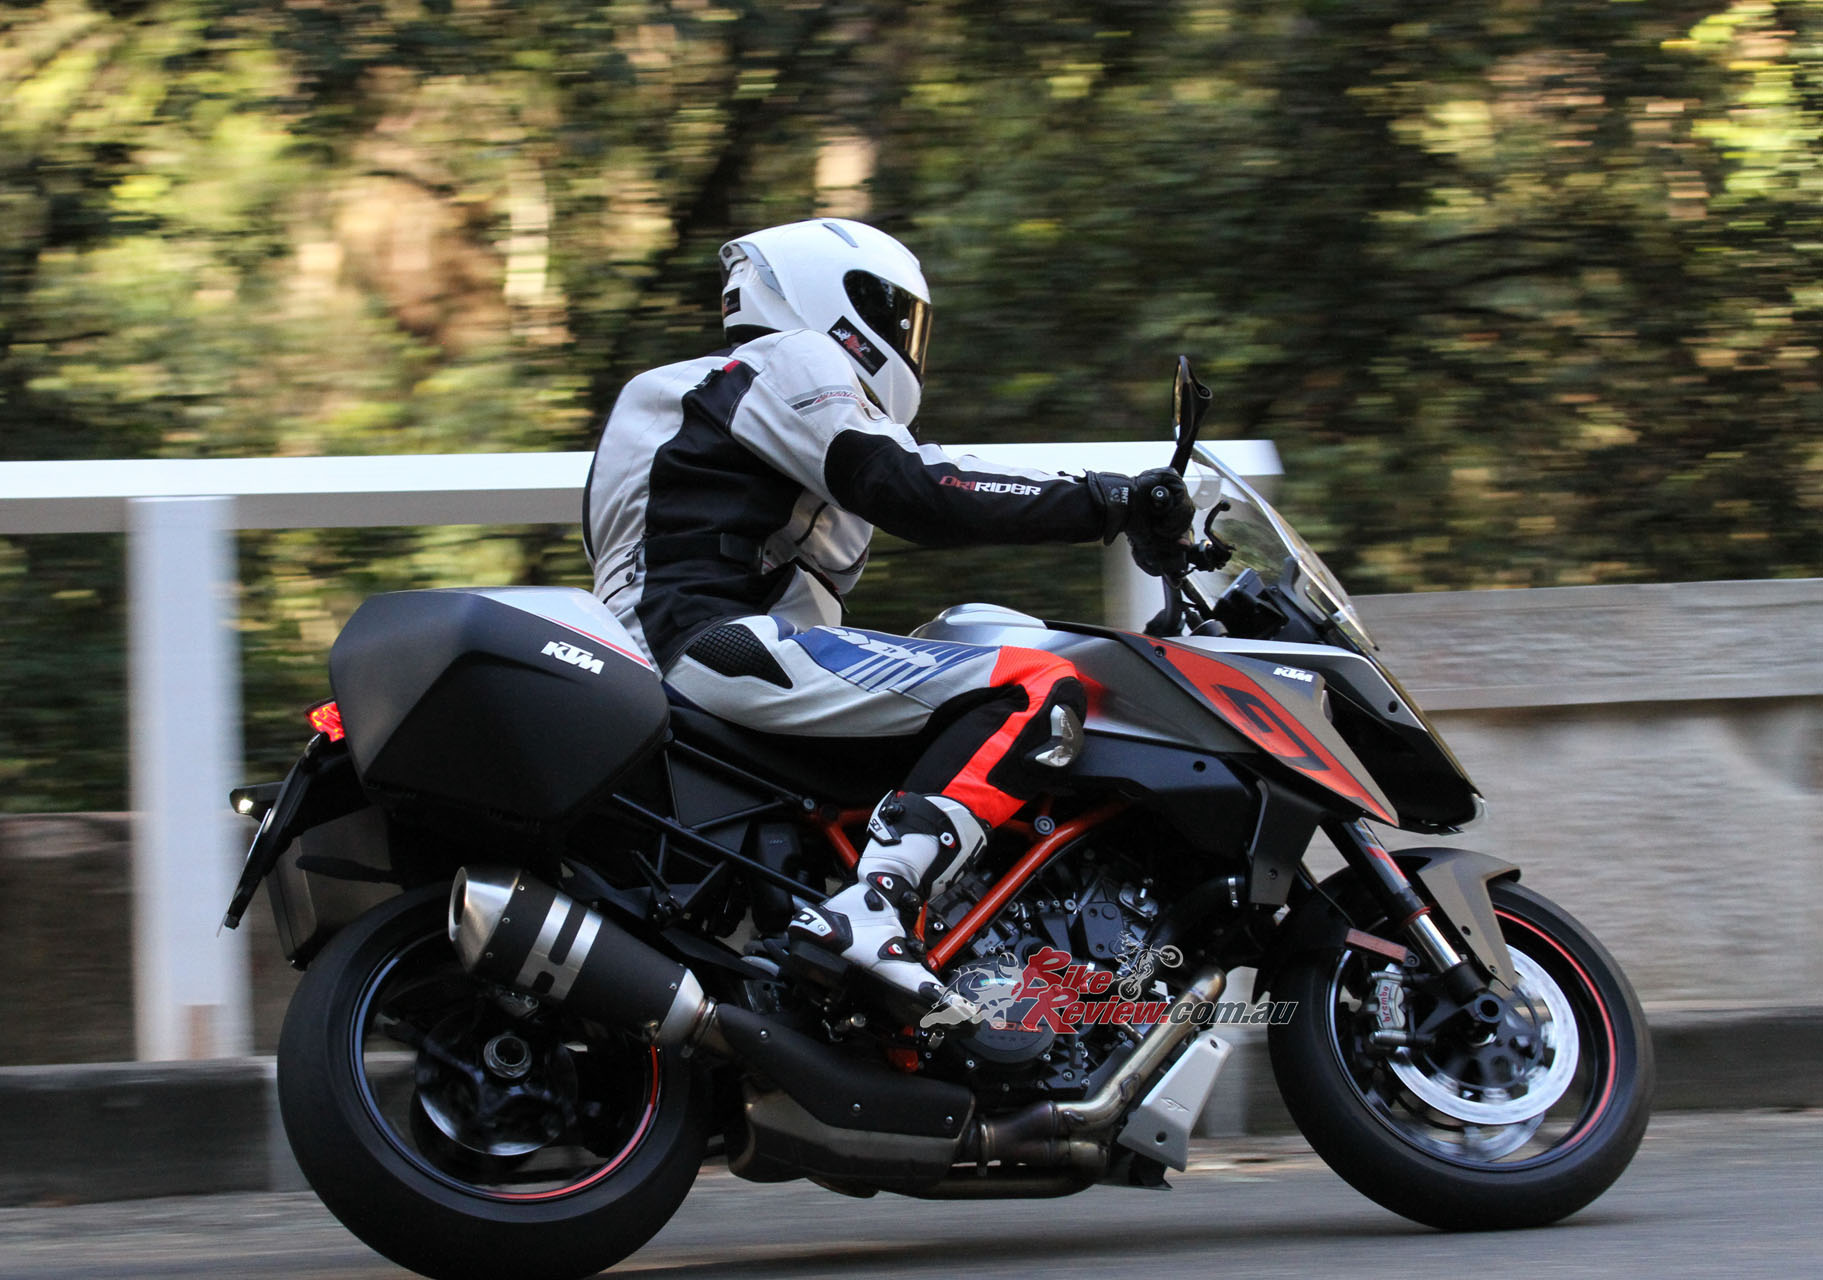 Ktm 1290 Super Duke R >> Video Review: KTM 1290 Super Duke GT - Bike Review